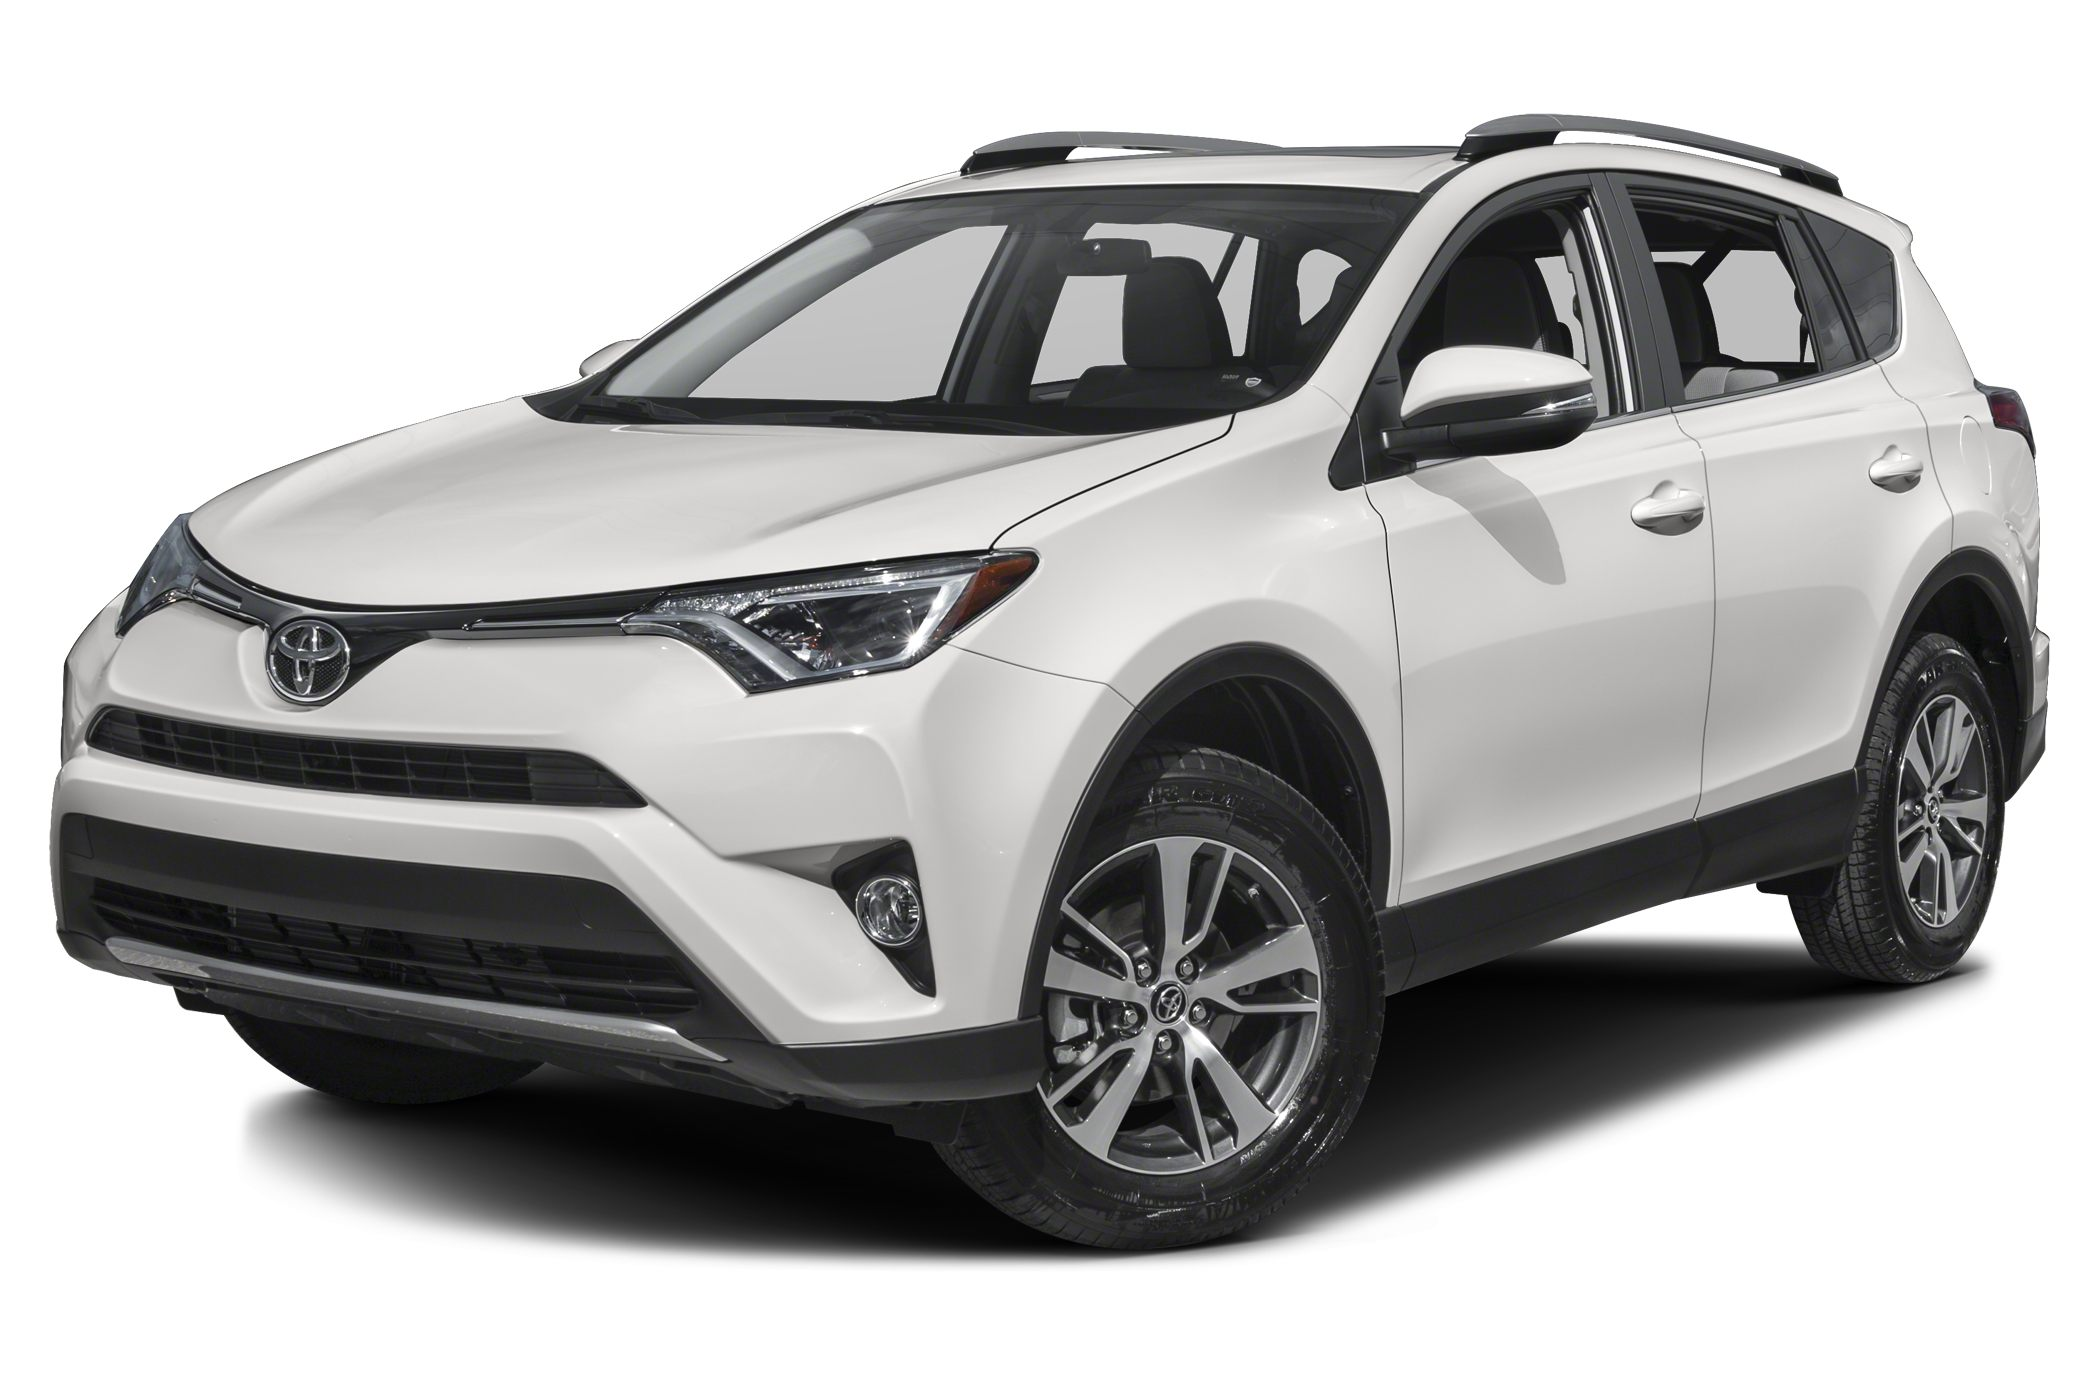 Xle 4dr All Wheel Drive 2018 Toyota Rav4 Photos